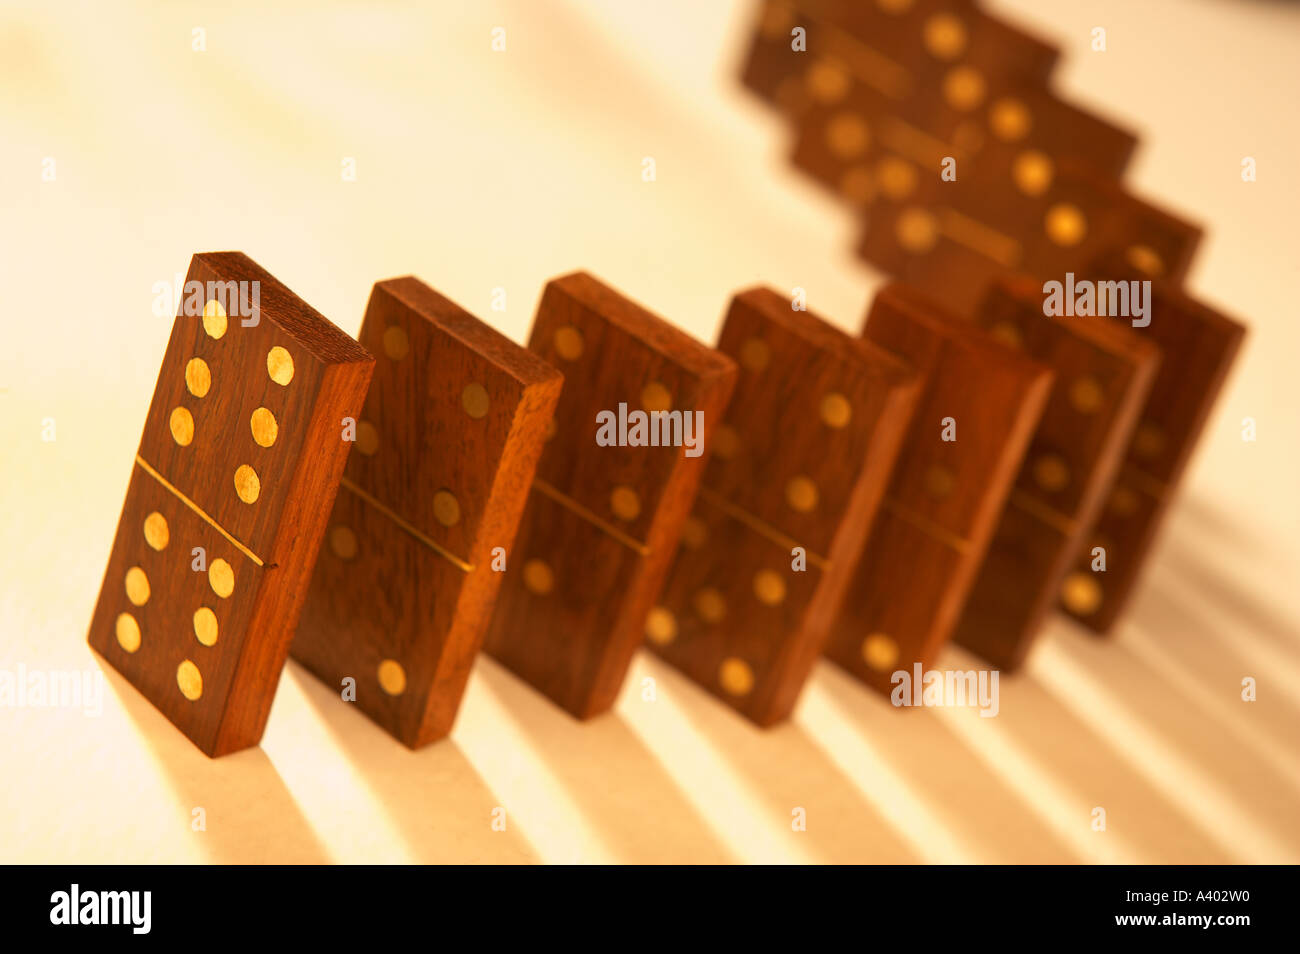 Row Of Several Antique Wood And Brass Dominoes Stock Photo 6222351